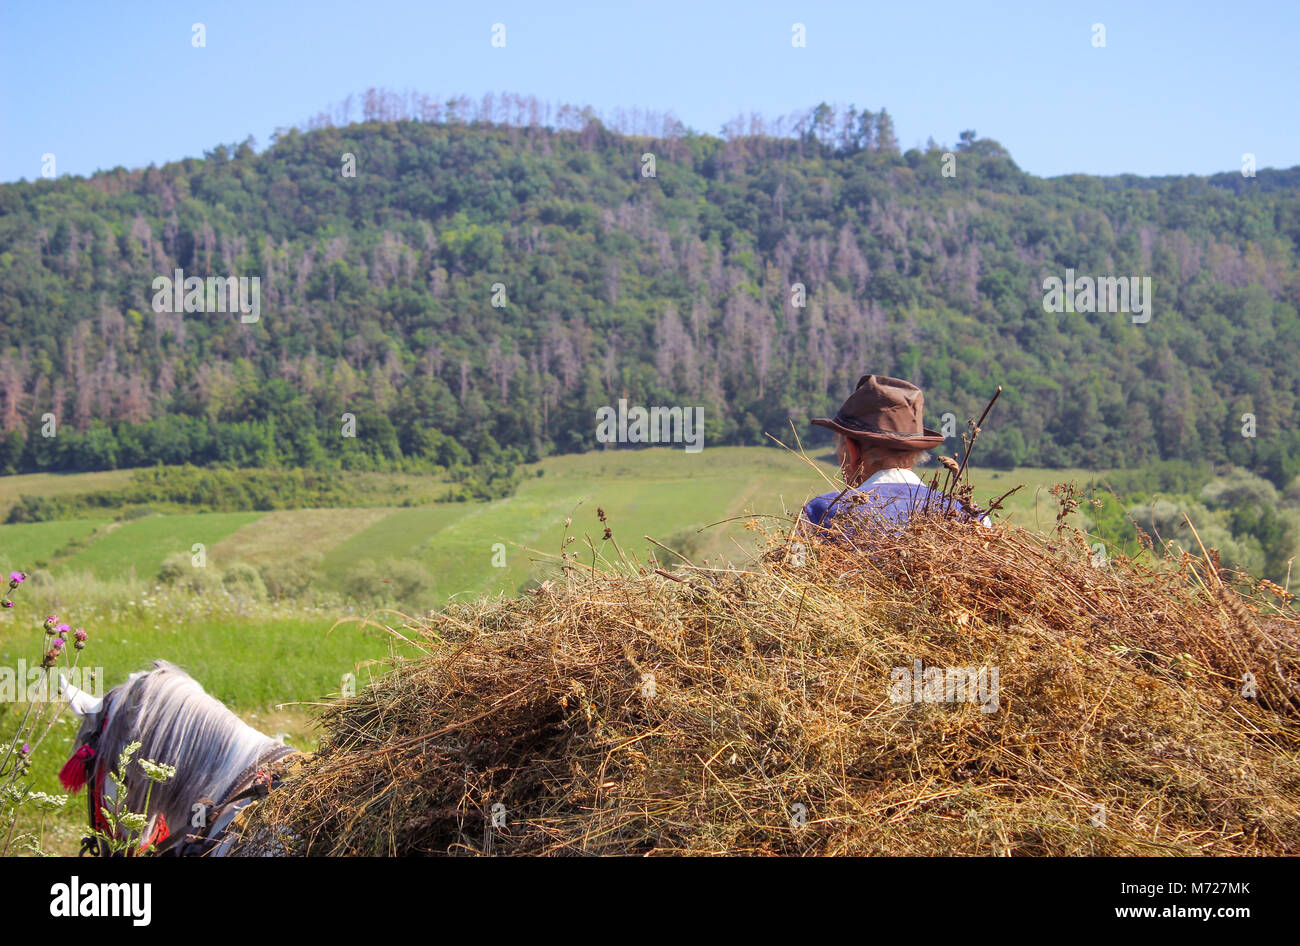 Carrying Hay on Carriot, Traditional Farming - Stock Image